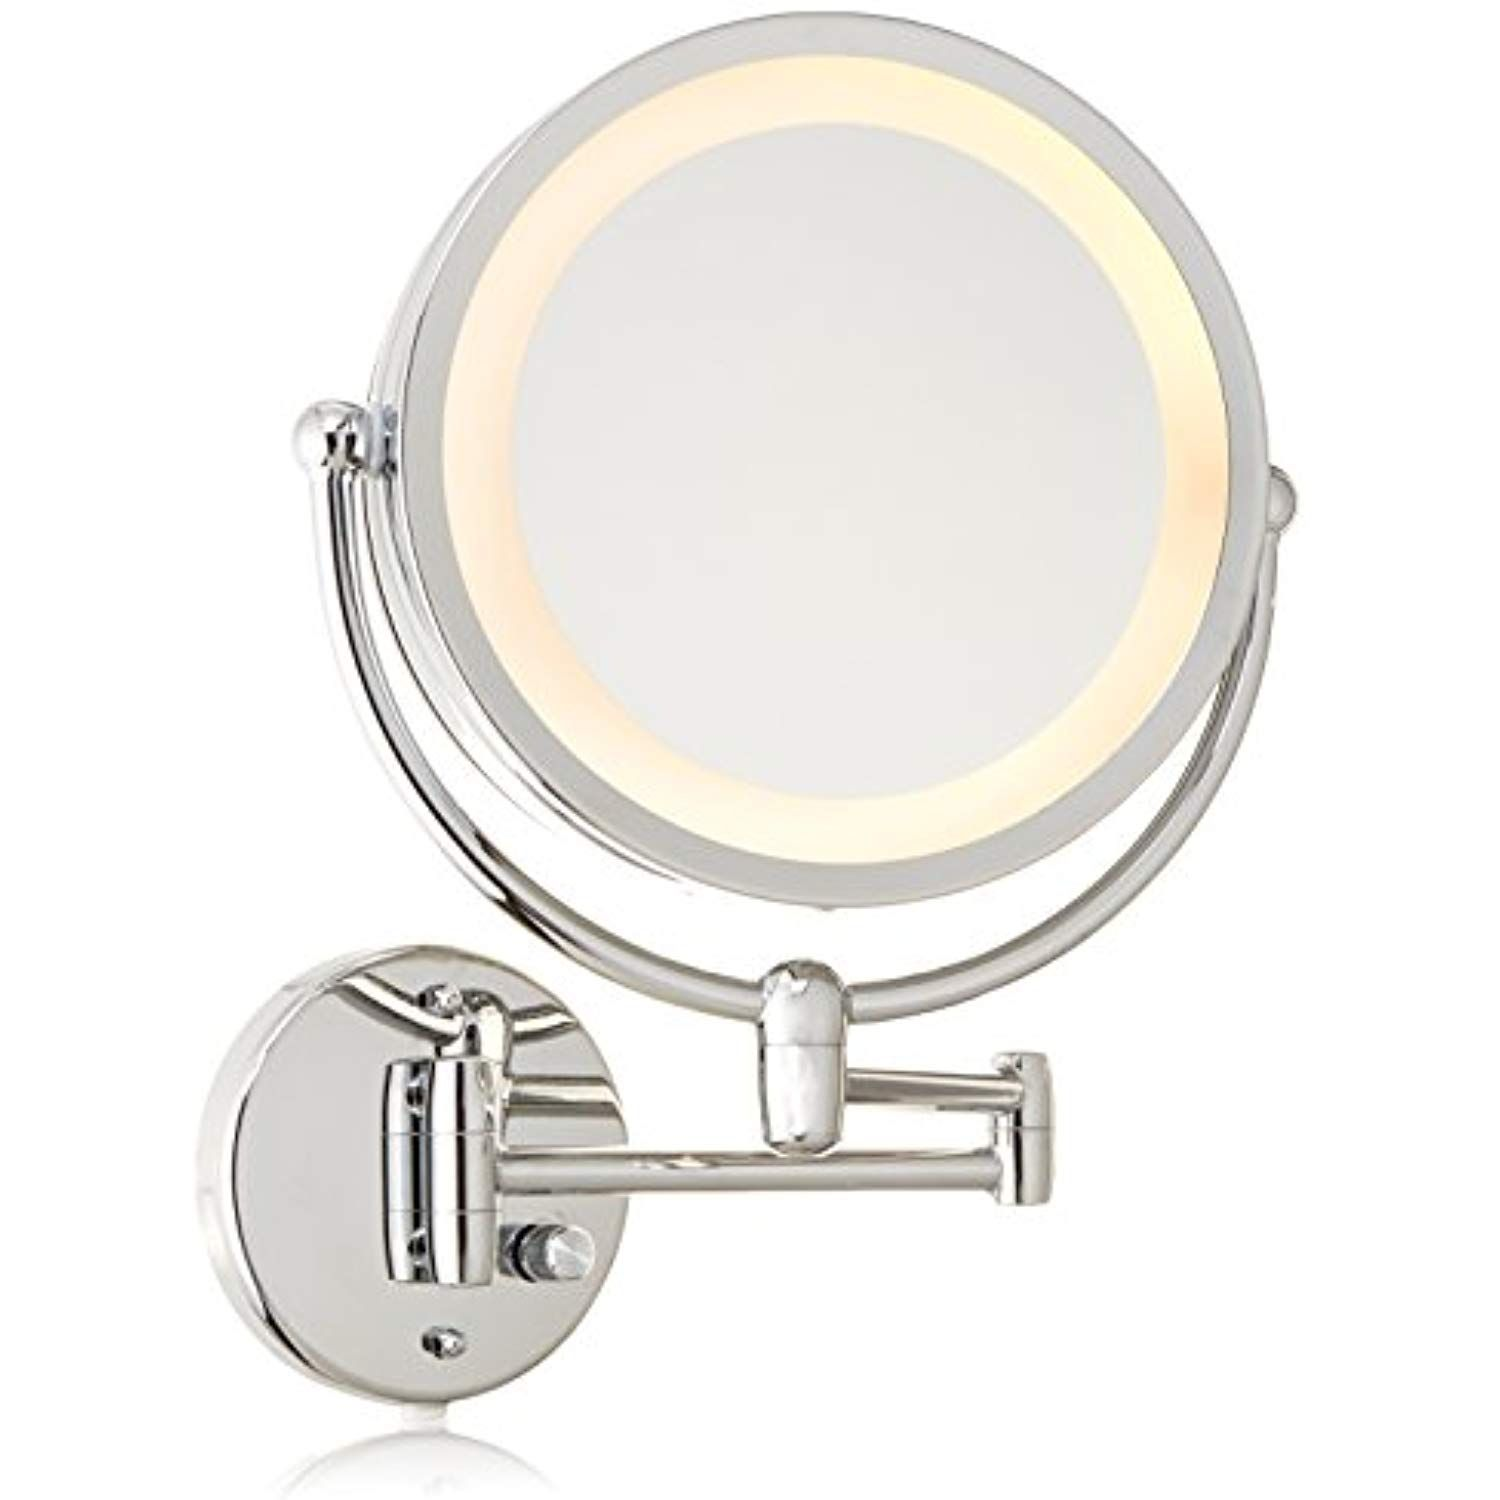 Danielle Creations Chrome Revolving Wall Mounted Lighted Mirror 10x Magnification Wall Mounted Makeup Mirror Mirror With Lights Makeup Mirror With Lights